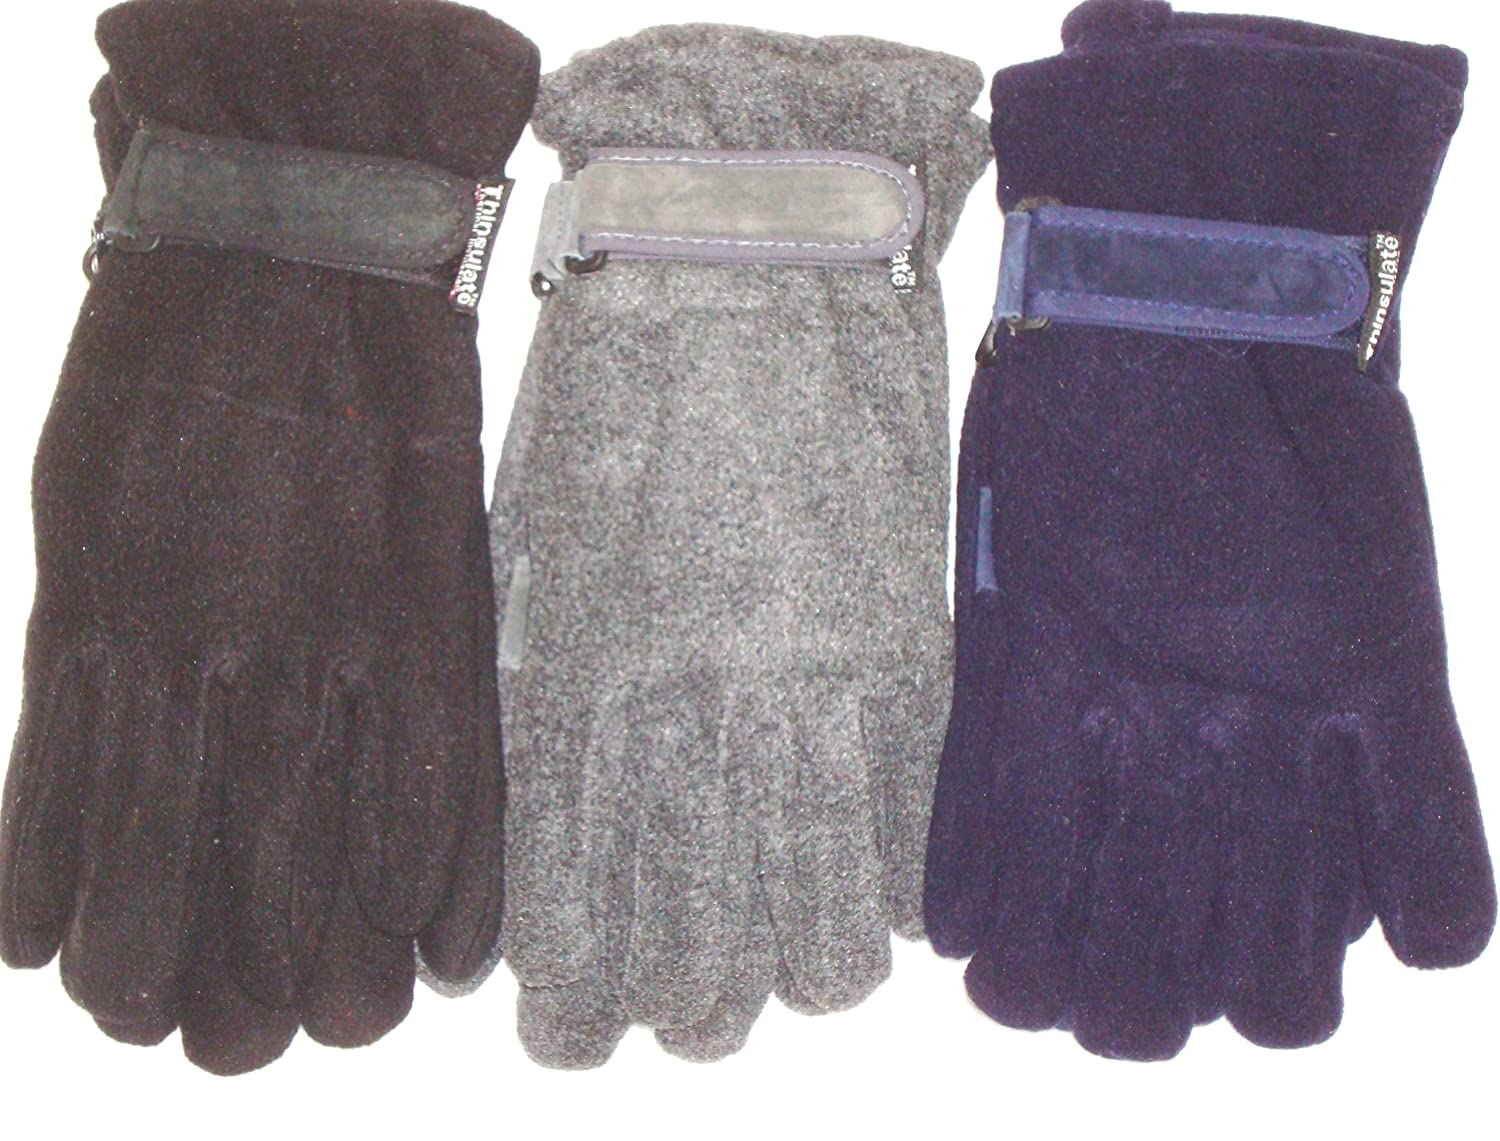 Three Pairs One Size Mongolian Fleece Microfiber Lined Very Warm Gloves